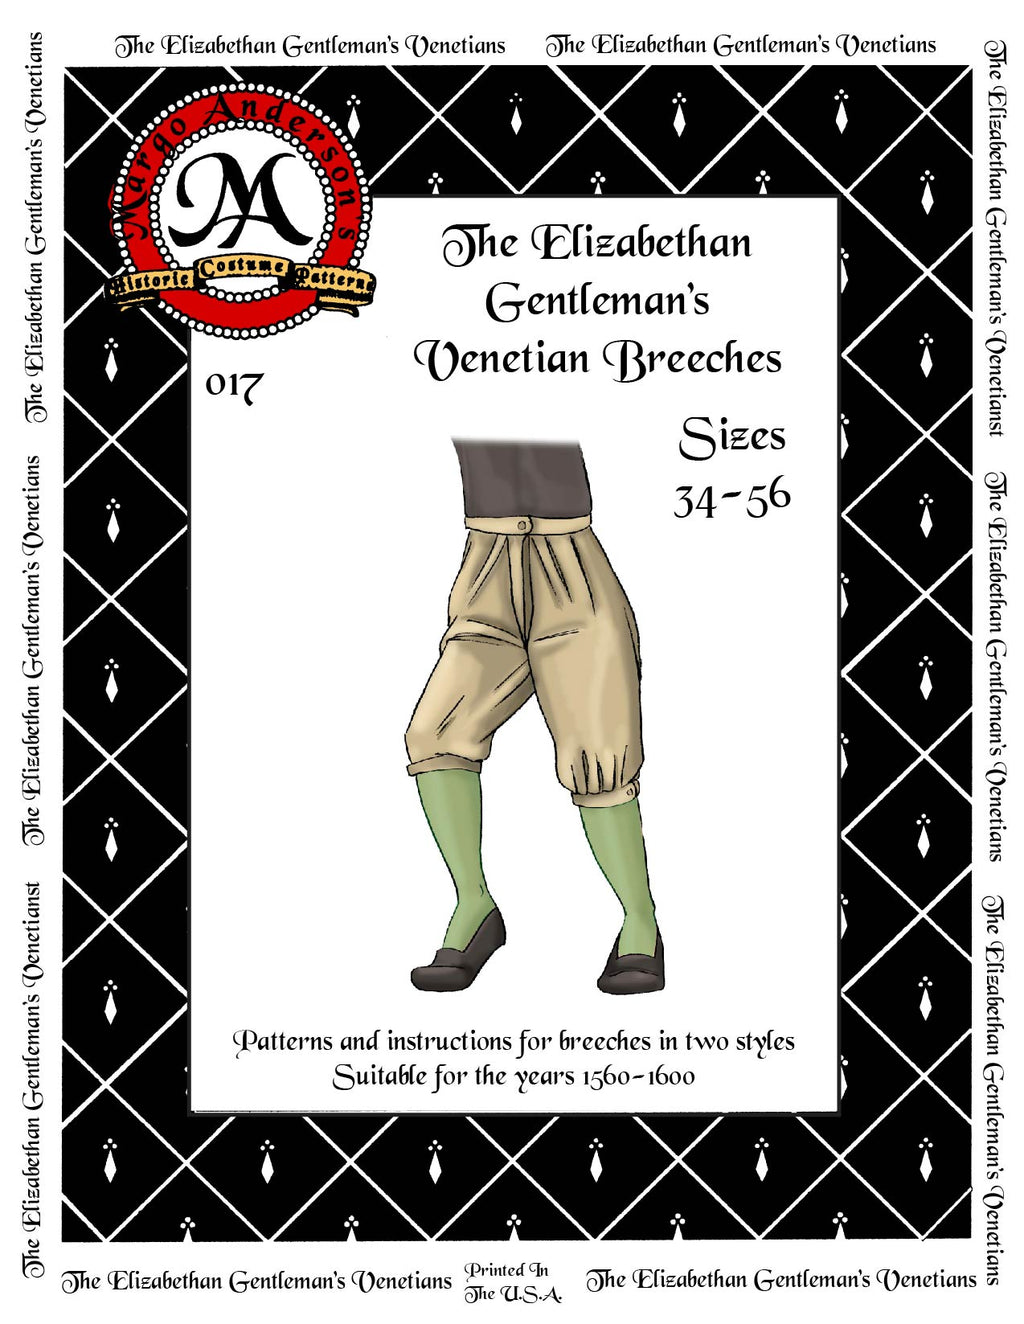 017D The Elizabethan Gentleman's Venetian Breeches Digital Download